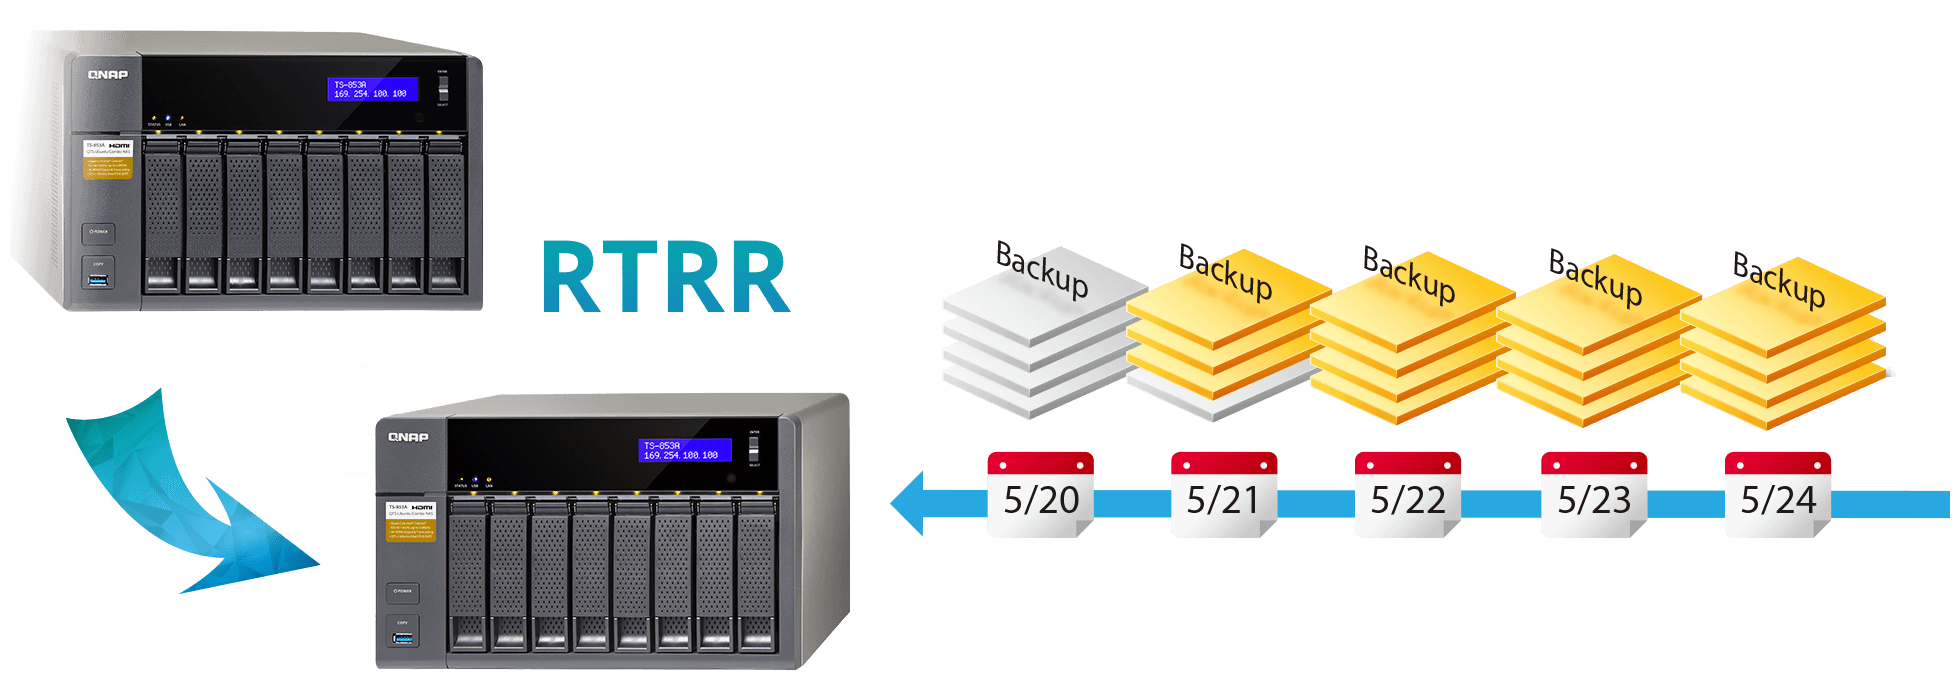 QNAP NAS Disaster recovery solutions